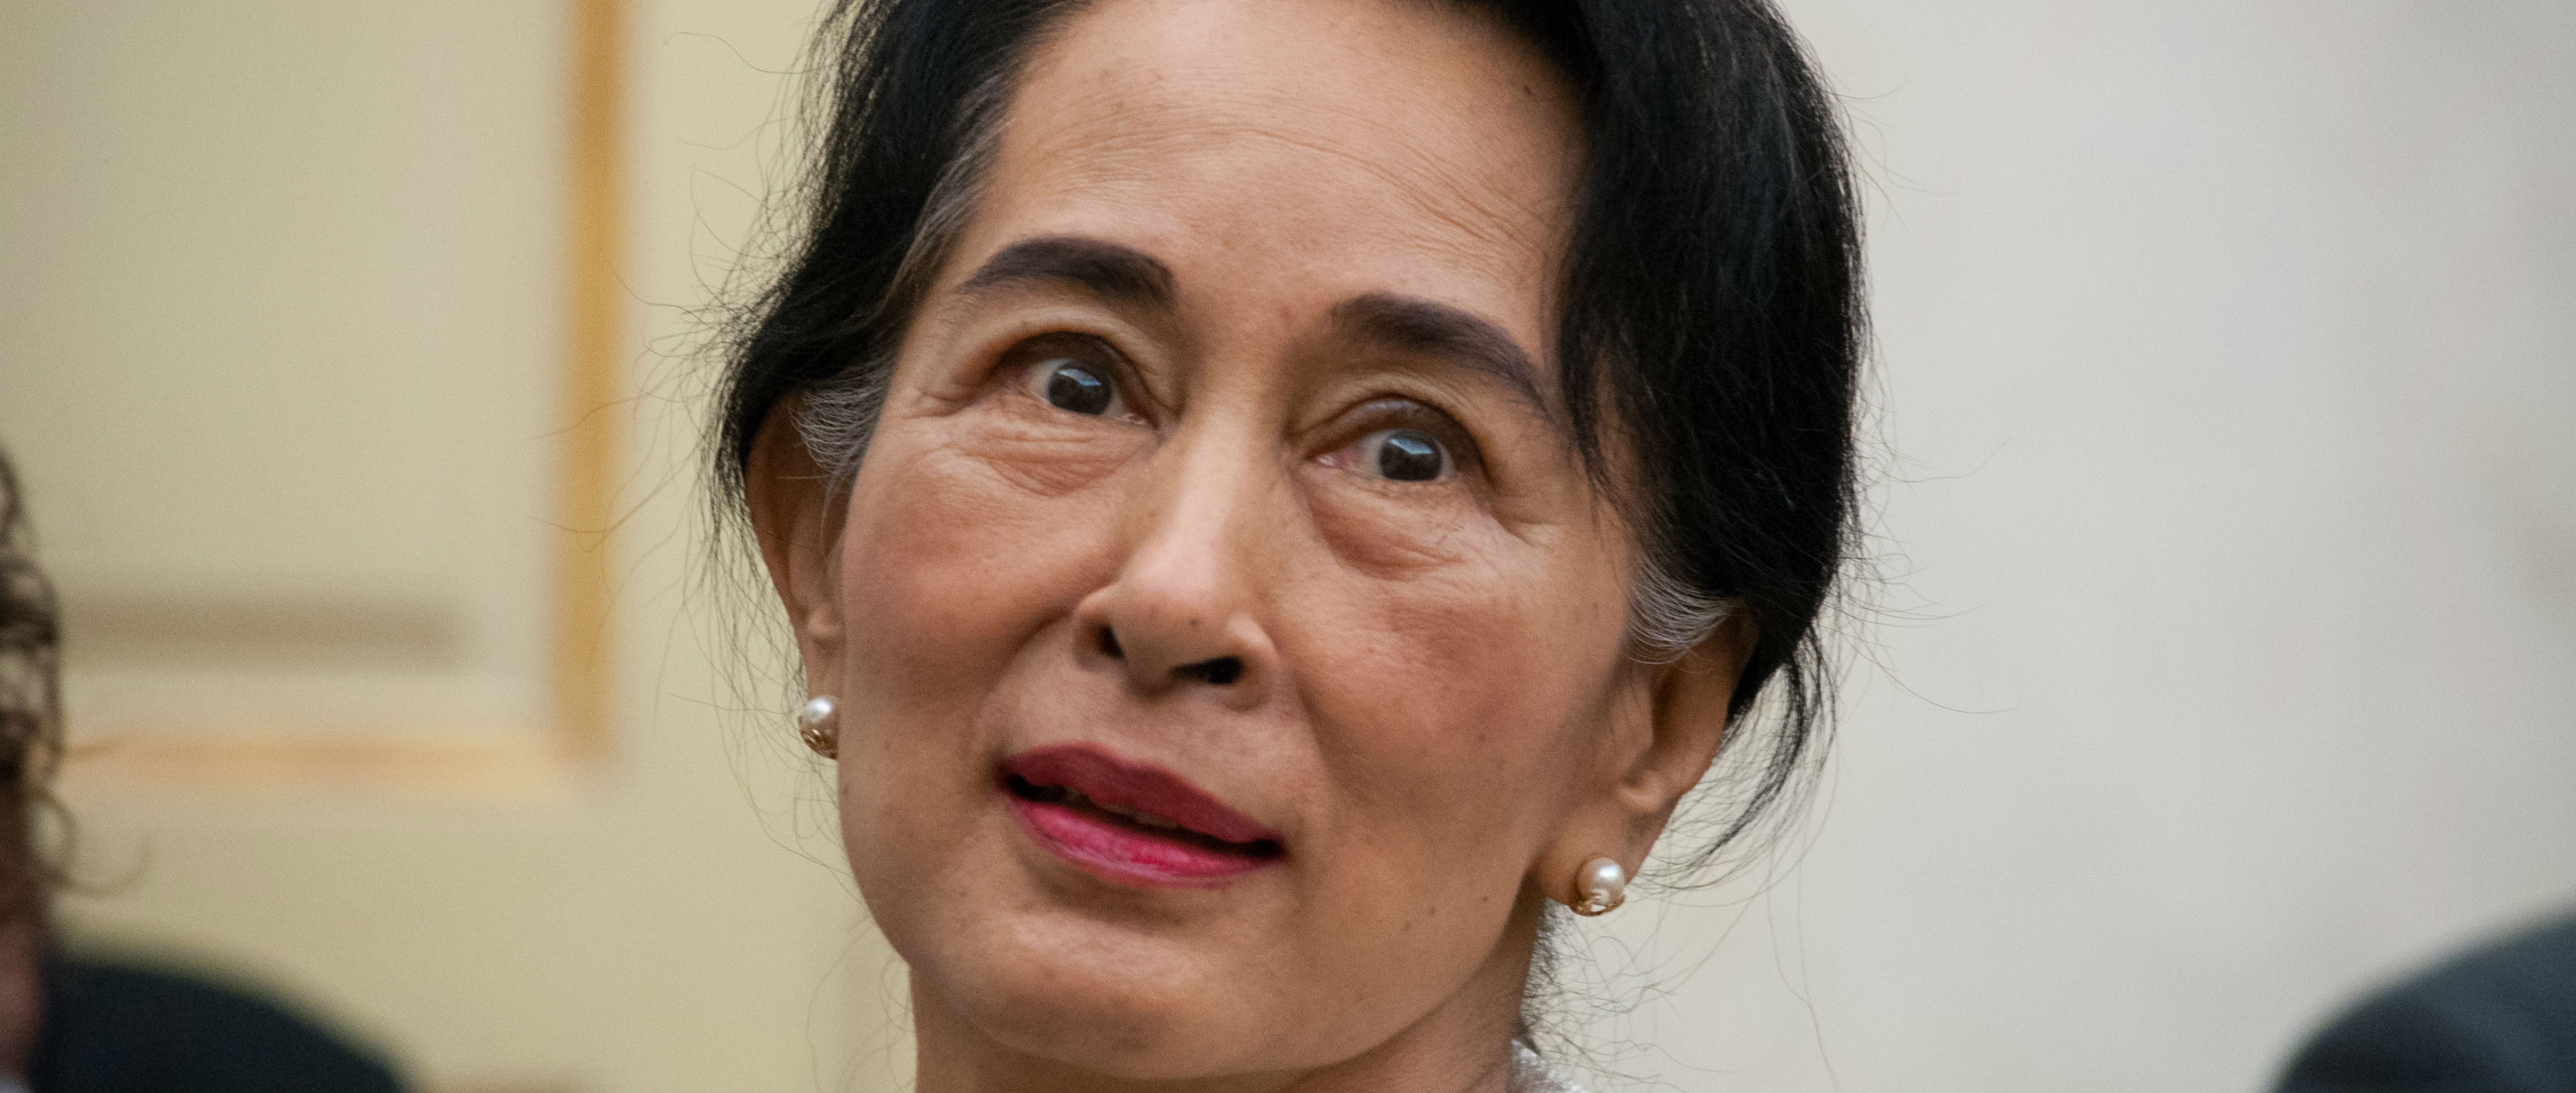 Councillors Vote To Take Back Award From Aung San Suu Kyi